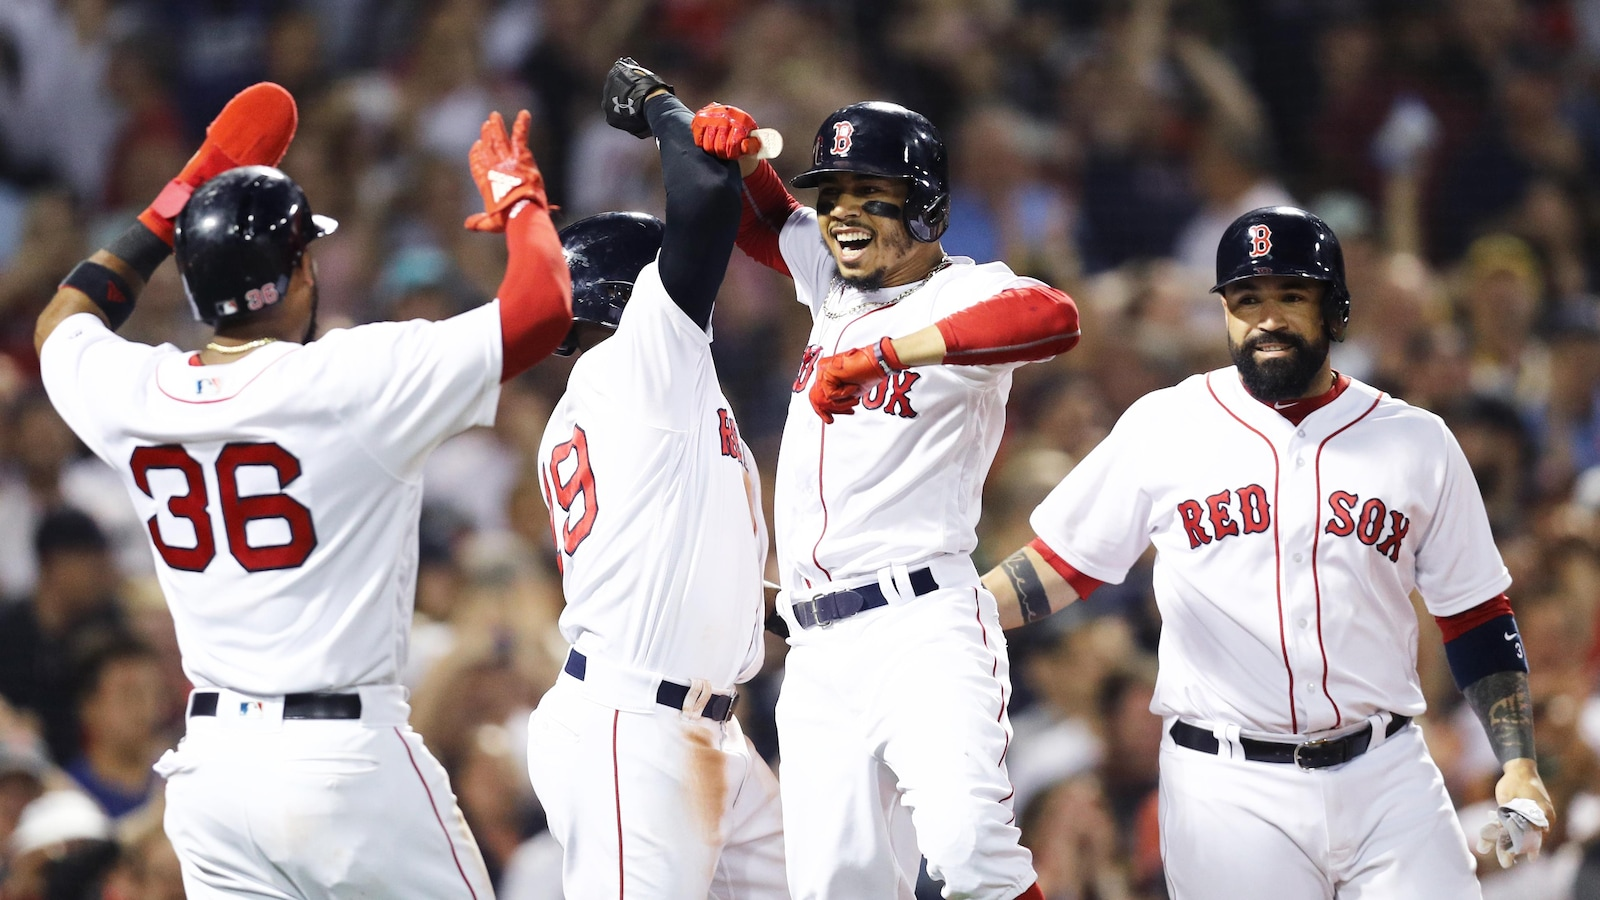 Les Red Sox célèbrent le grand chelem de Mookie Betts contre les Blue Jays.